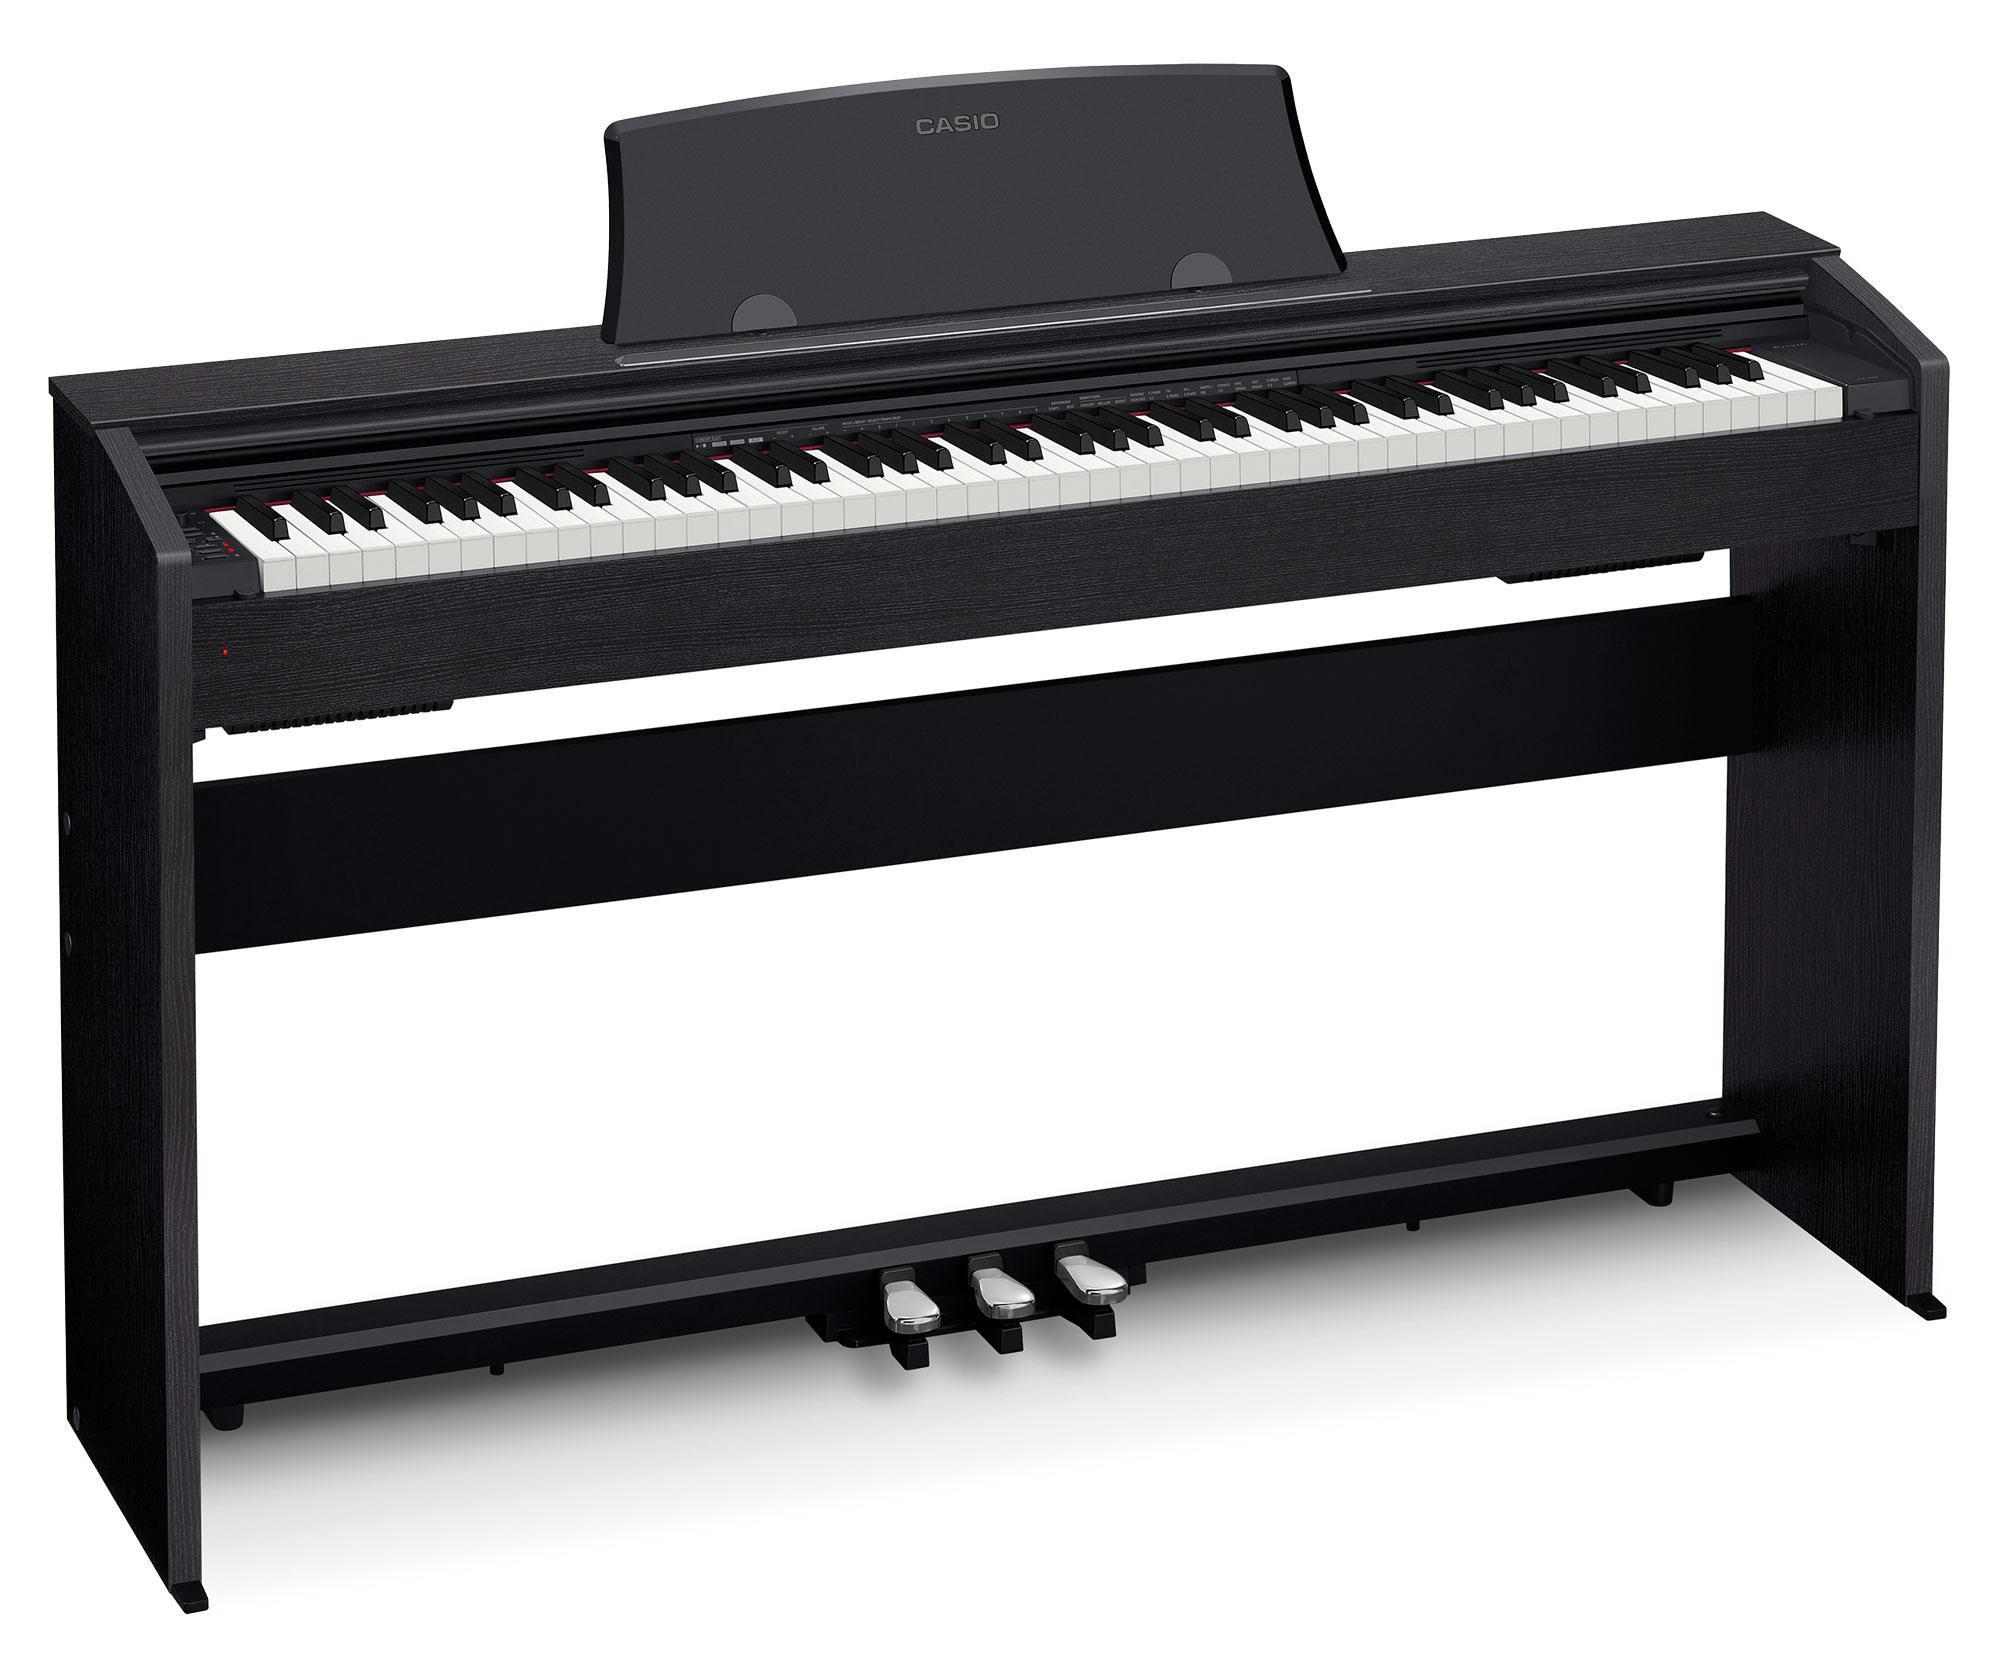 Casio PX 770 BK Privia Digitalpiano schwarz